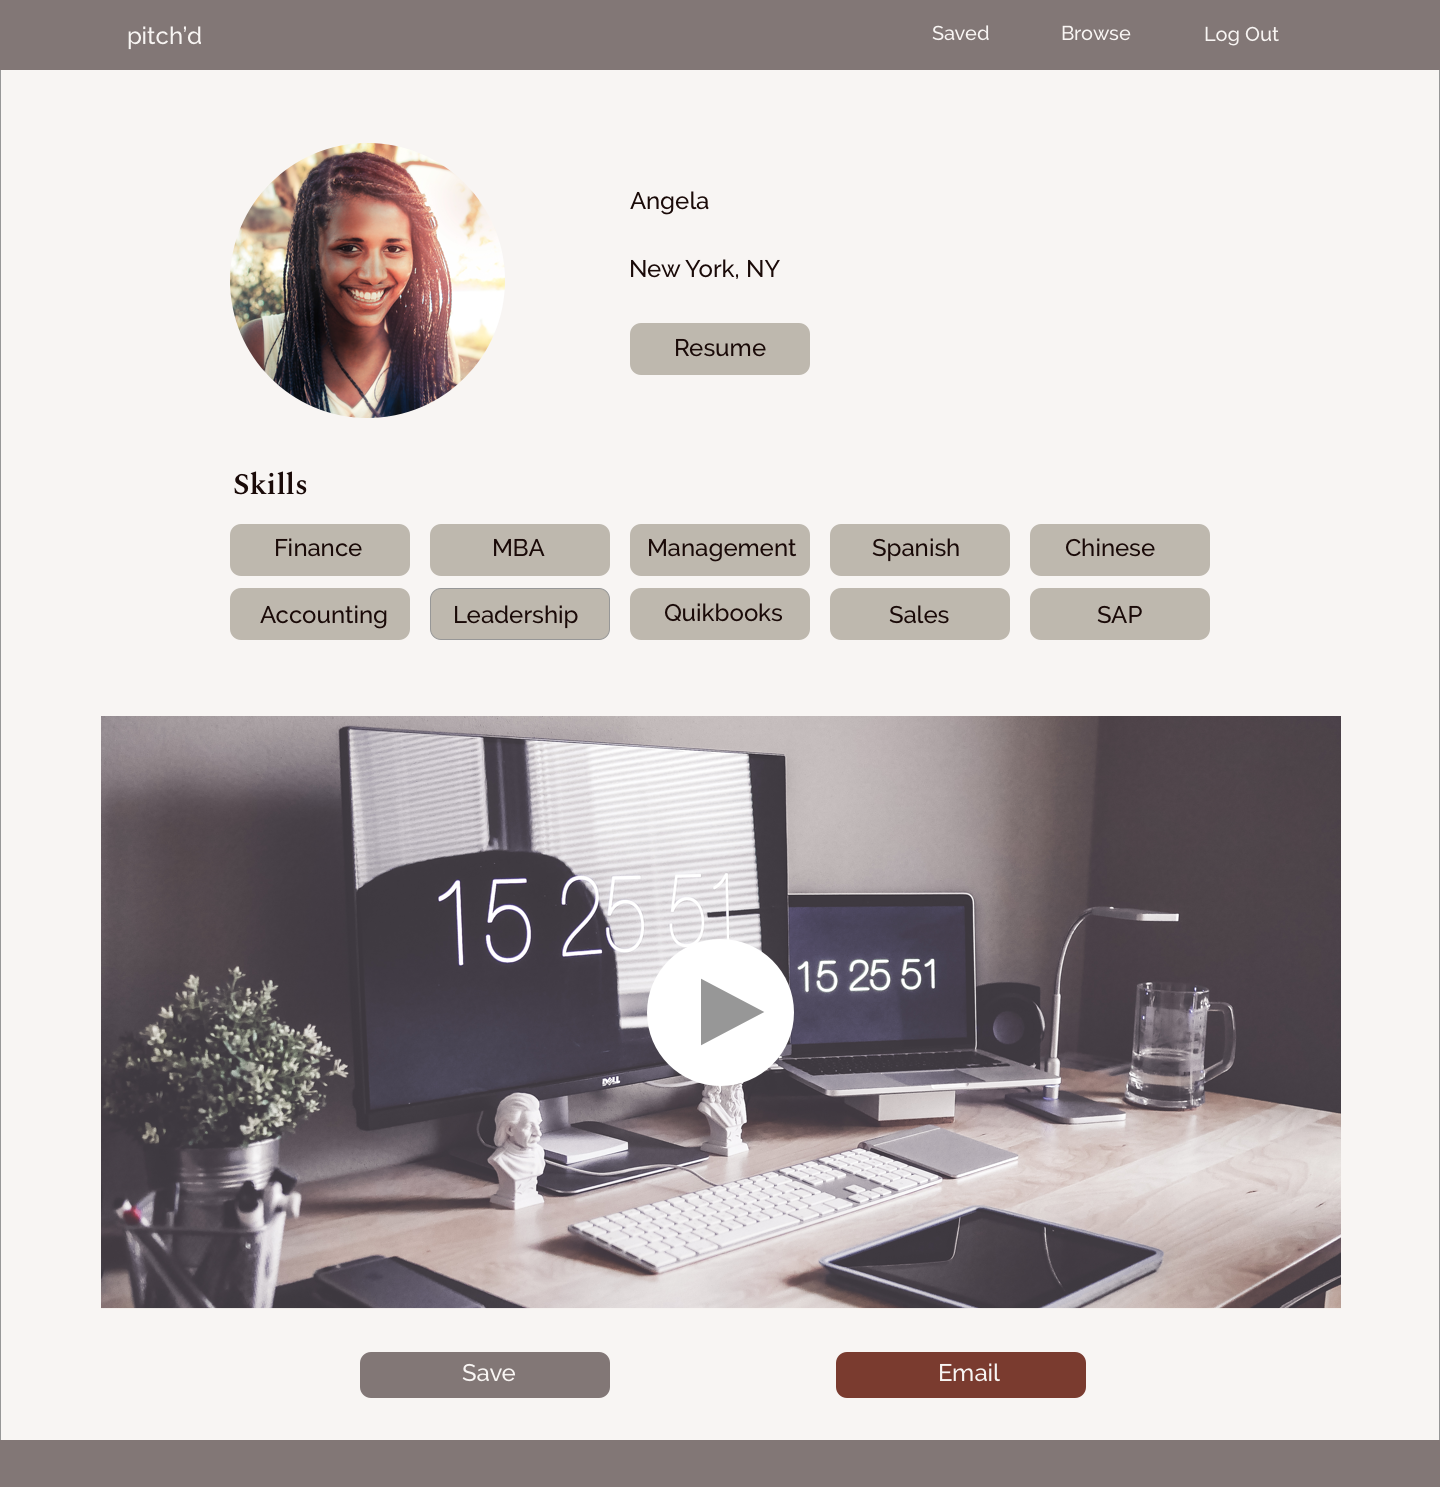 Pitch'd - UI/UX, WEBSITE DESIGN, STYLE GUIDE